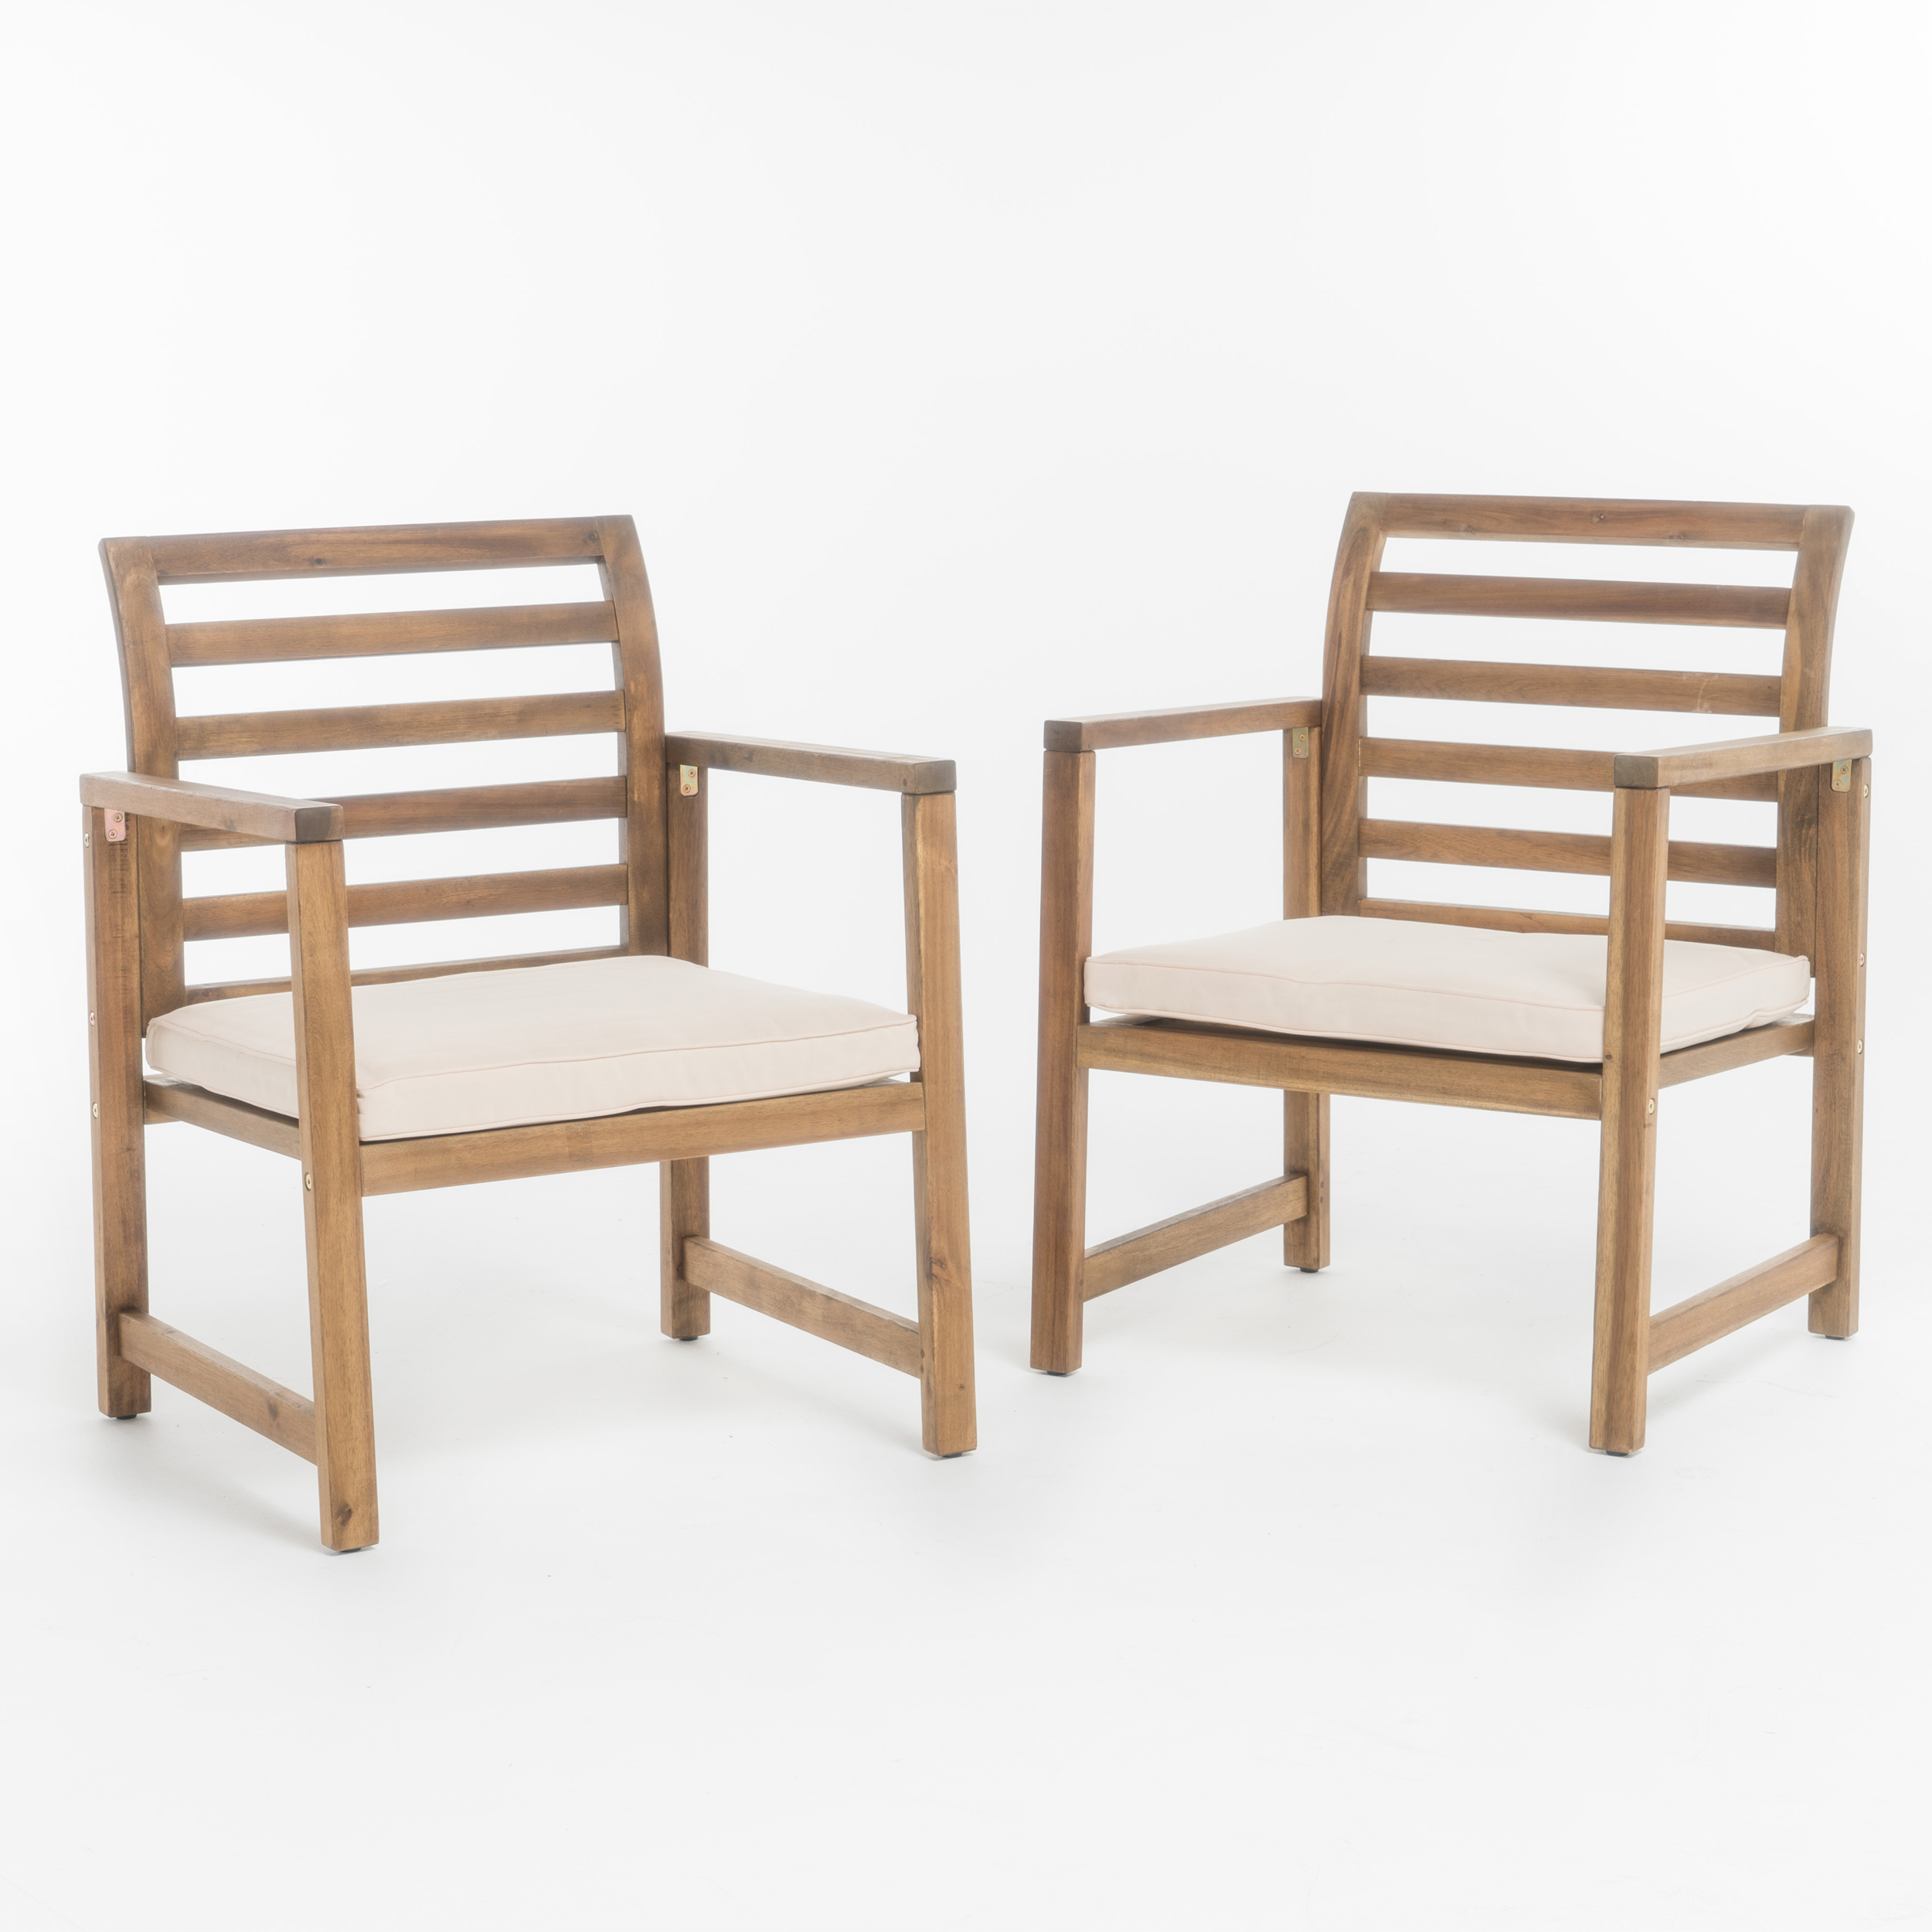 Eveleigh Outdoor Acacia Wood Club Chair, Set of 2, Natural Stained